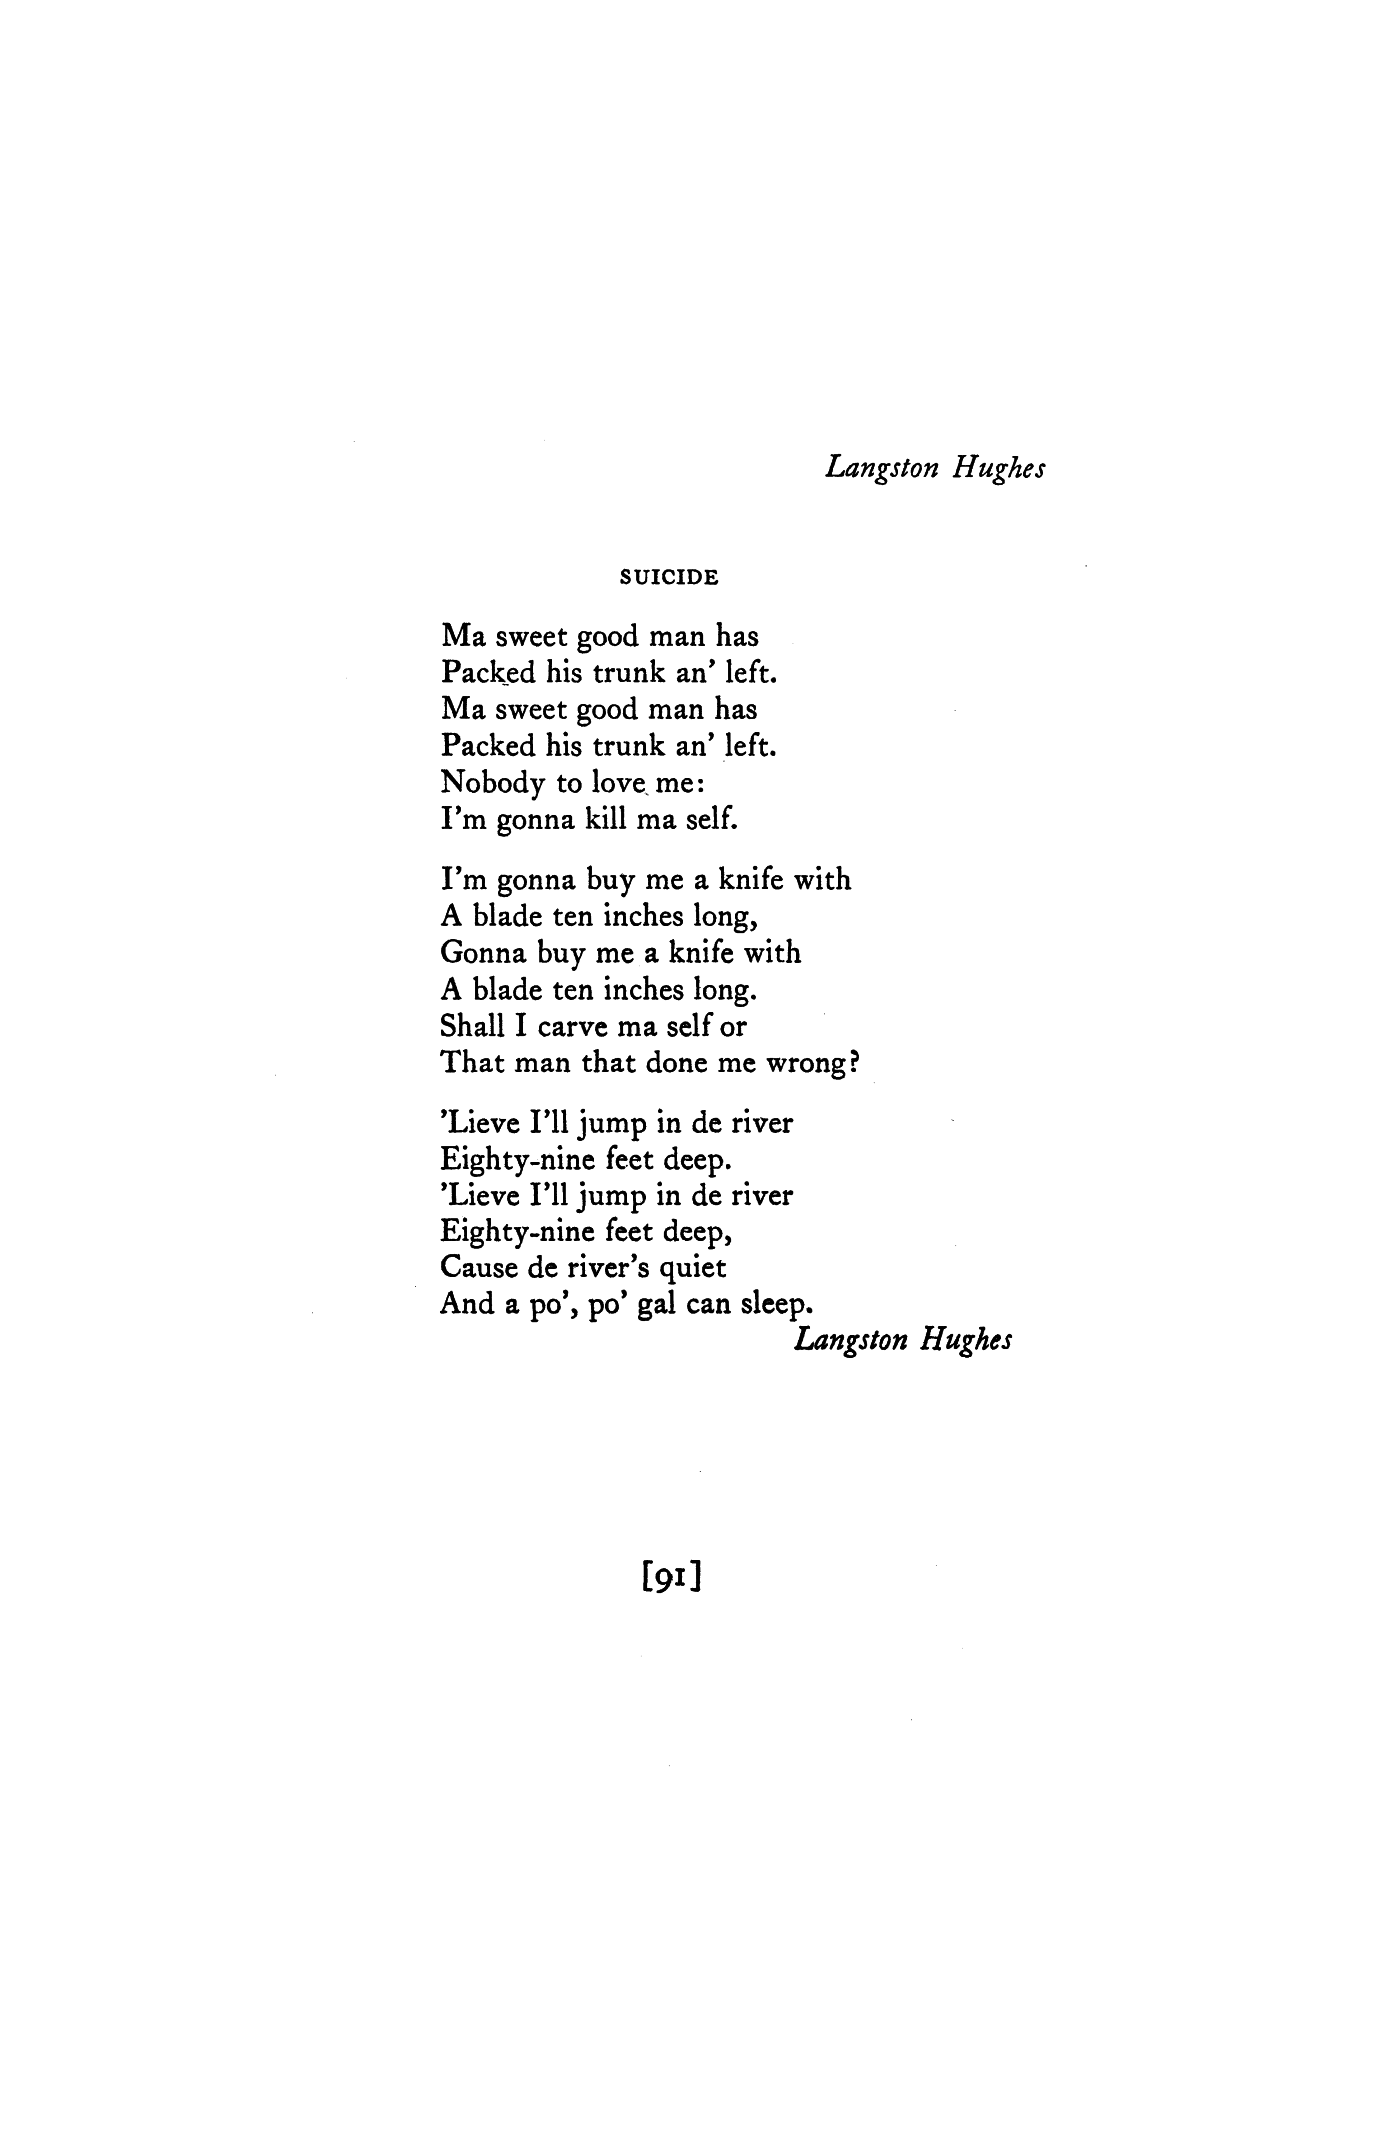 suicide by langston hughes poetry magazine